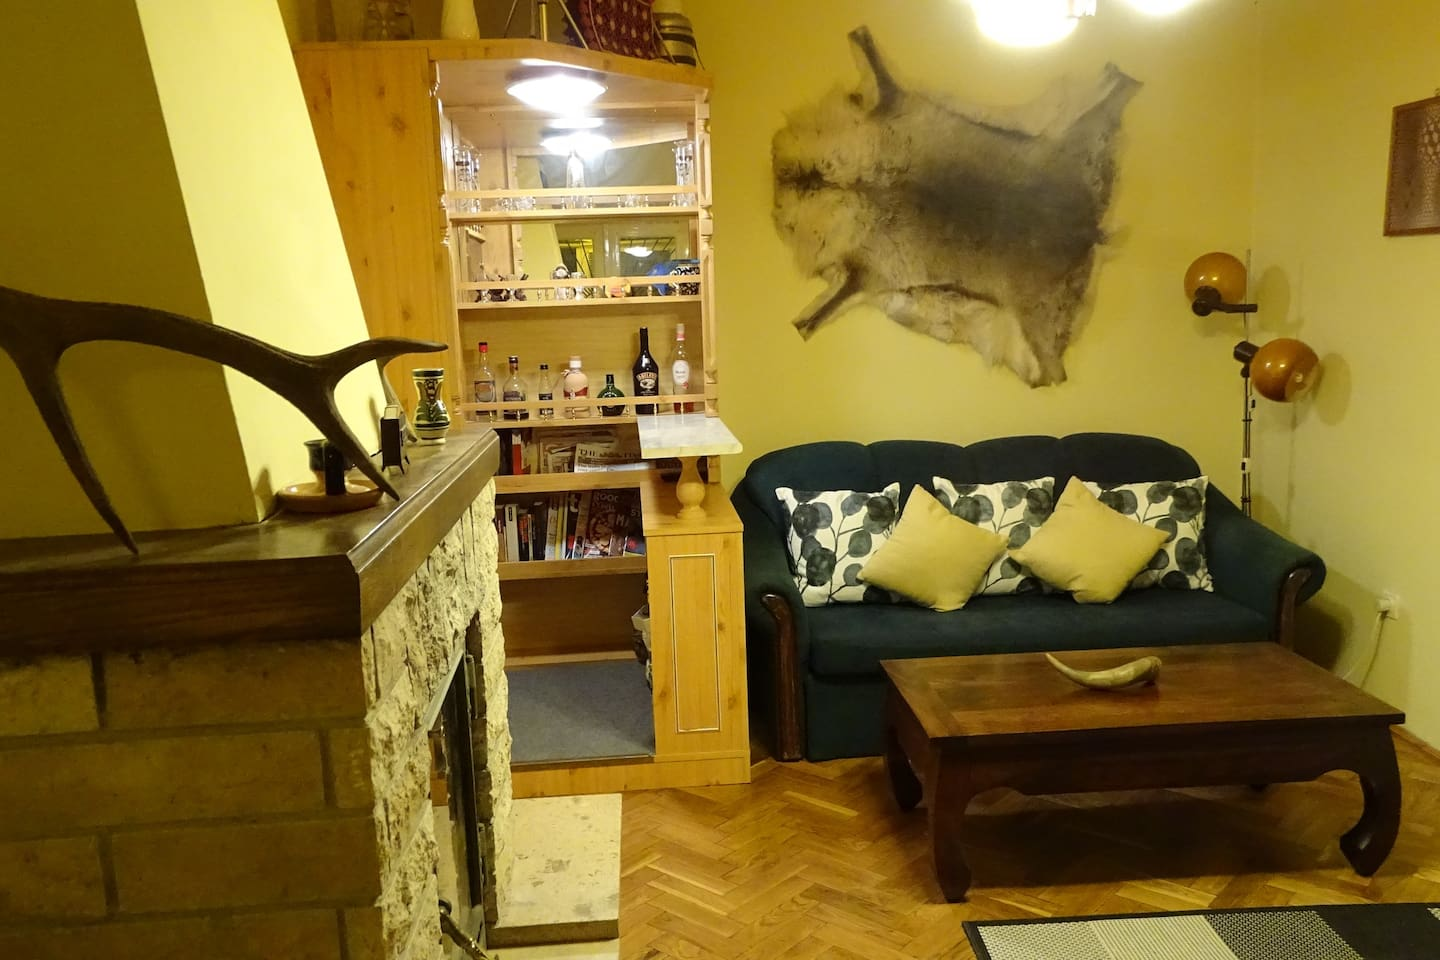 Fireplace, bar, couch